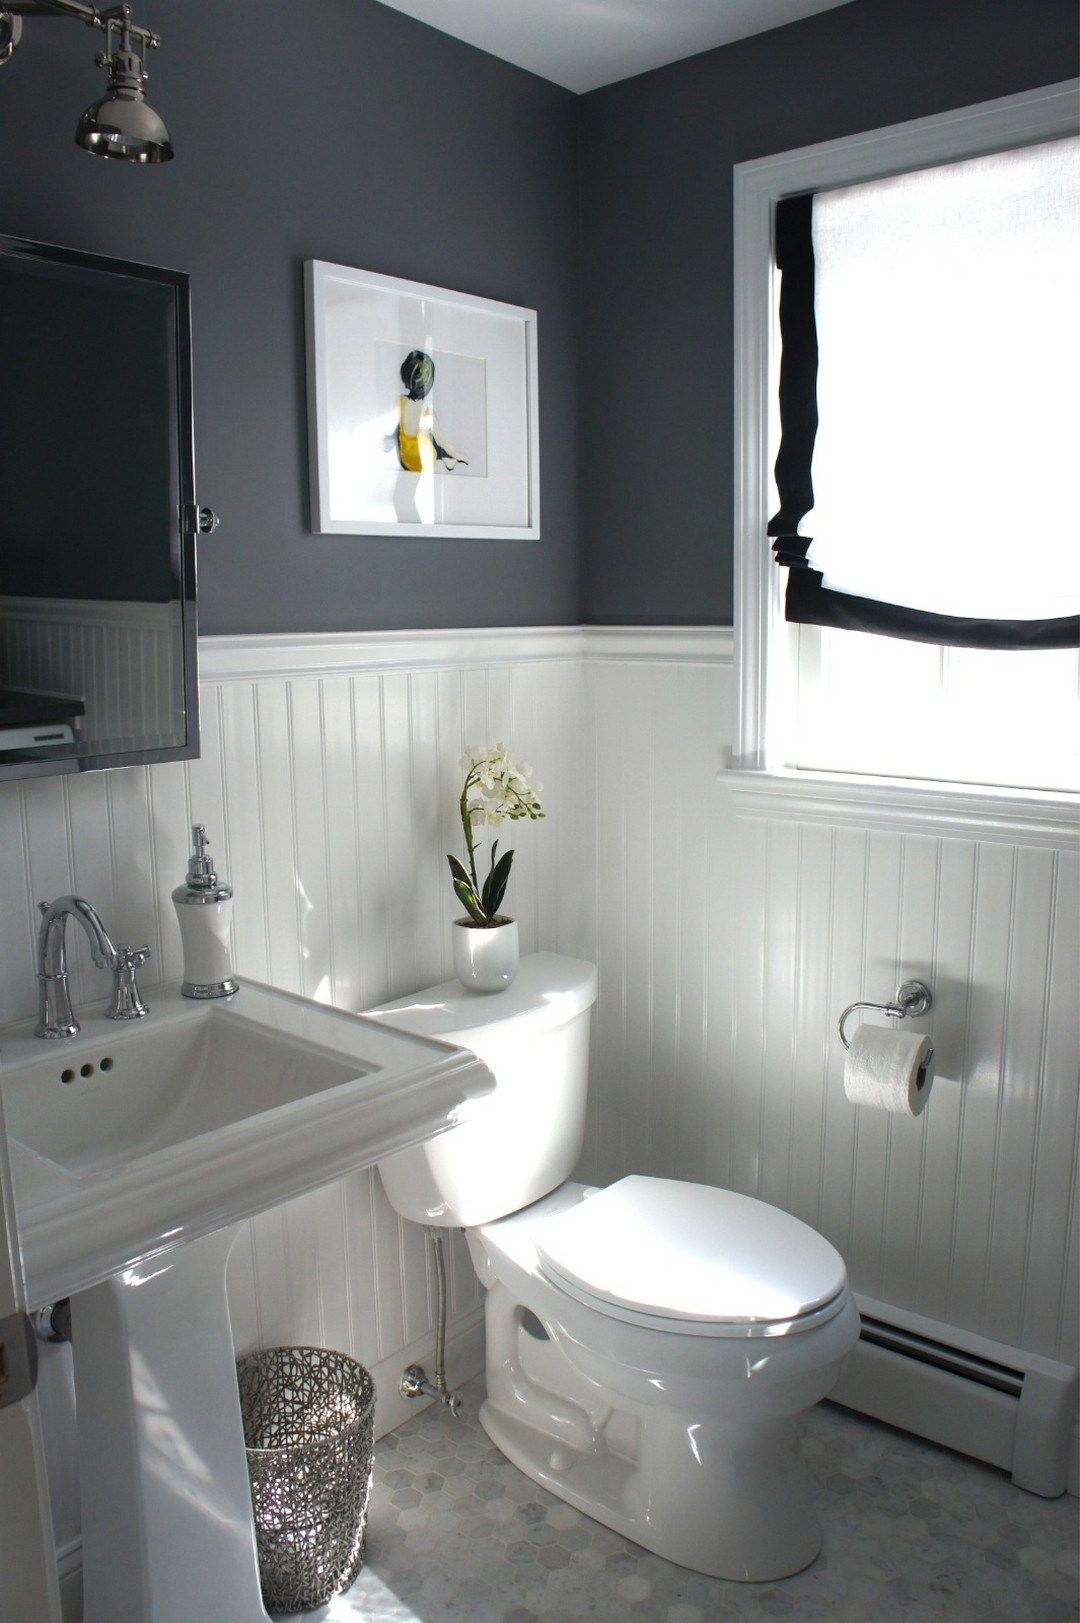 99 small master bathroom makeover ideas on a budget 48 for Small lavatory ideas